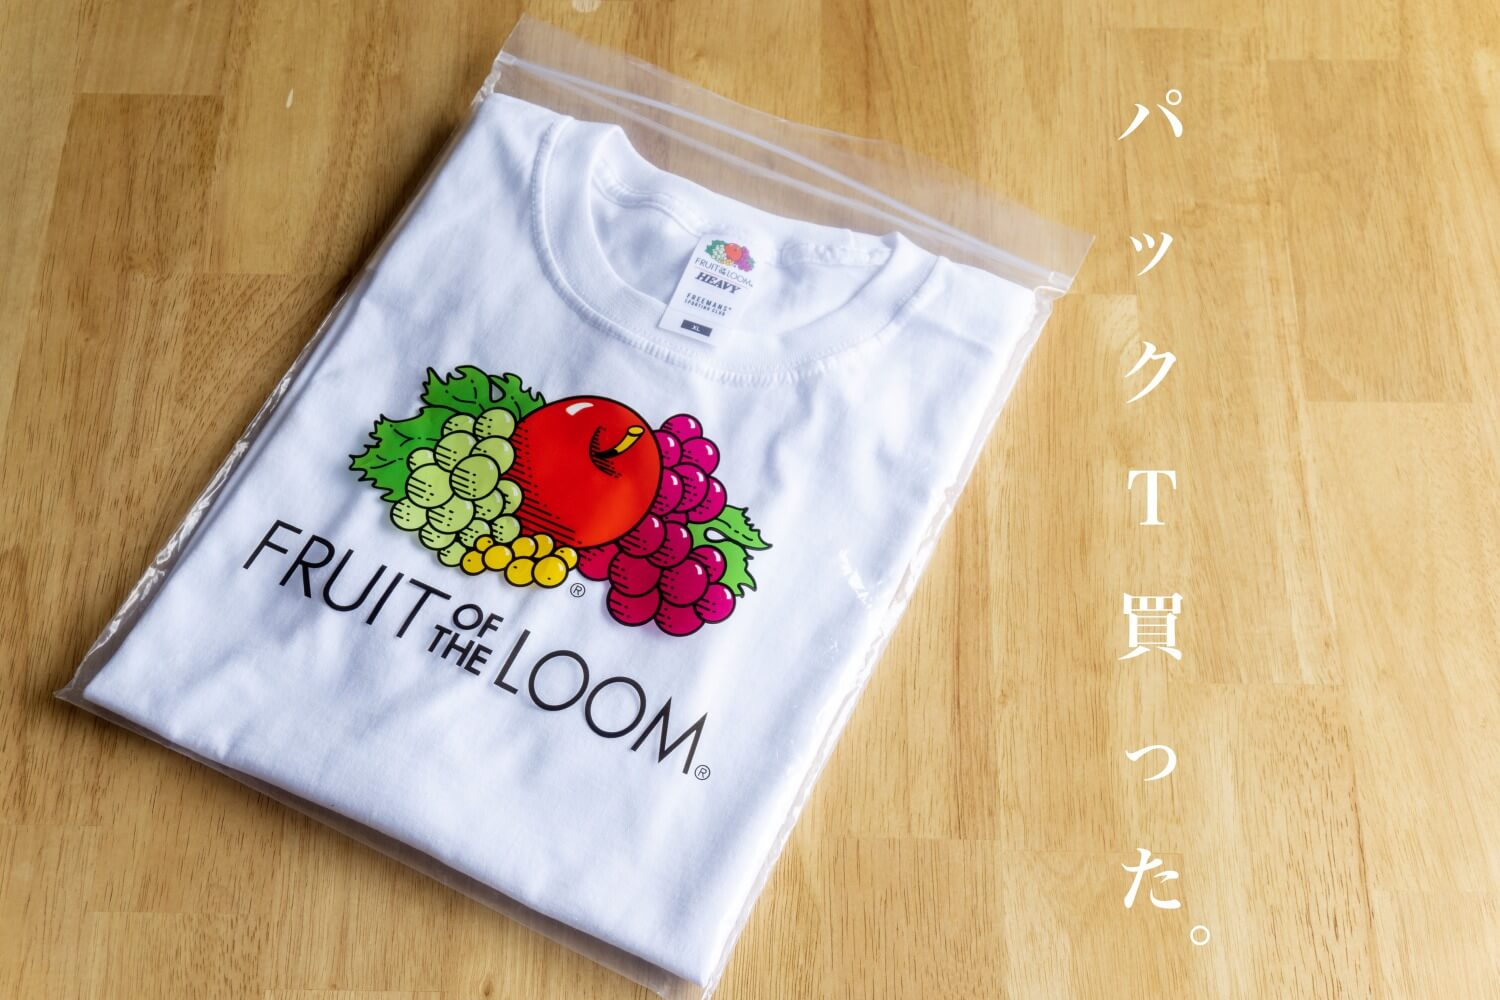 FSC×FRUIT OF THE LOOM 2PACK T-shirt